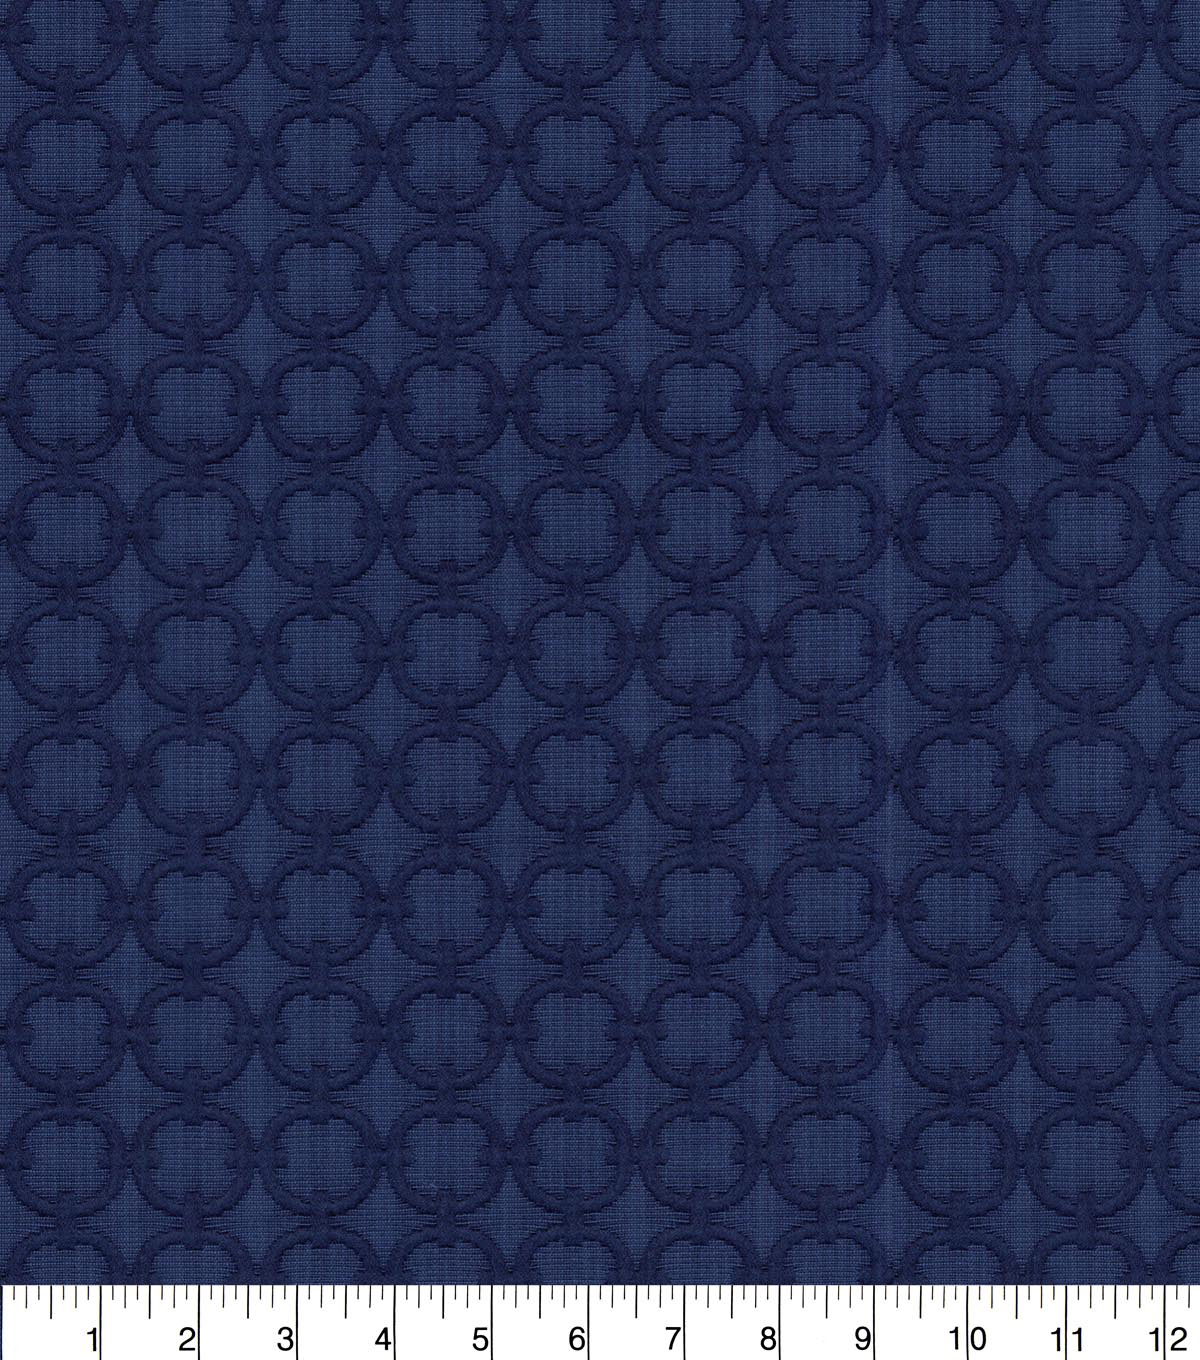 Home Decor 8\u0022x8\u0022 Fabric Swatch-Waverly Full Circle Navy